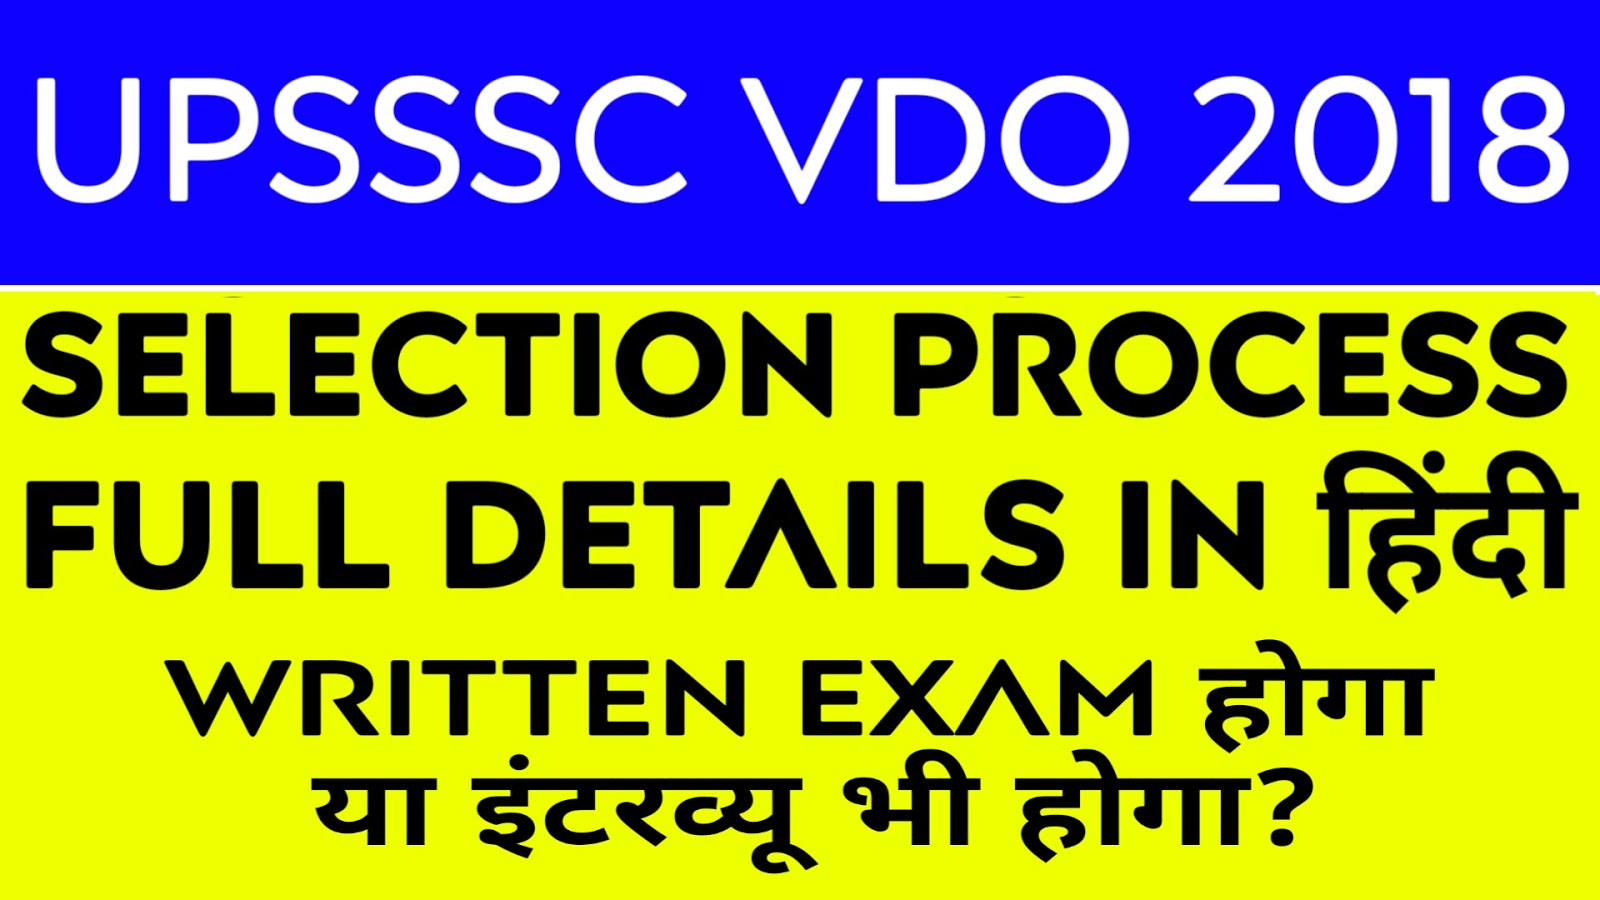 UPSSSC VDO SELECTION PROCESS IN HINDI